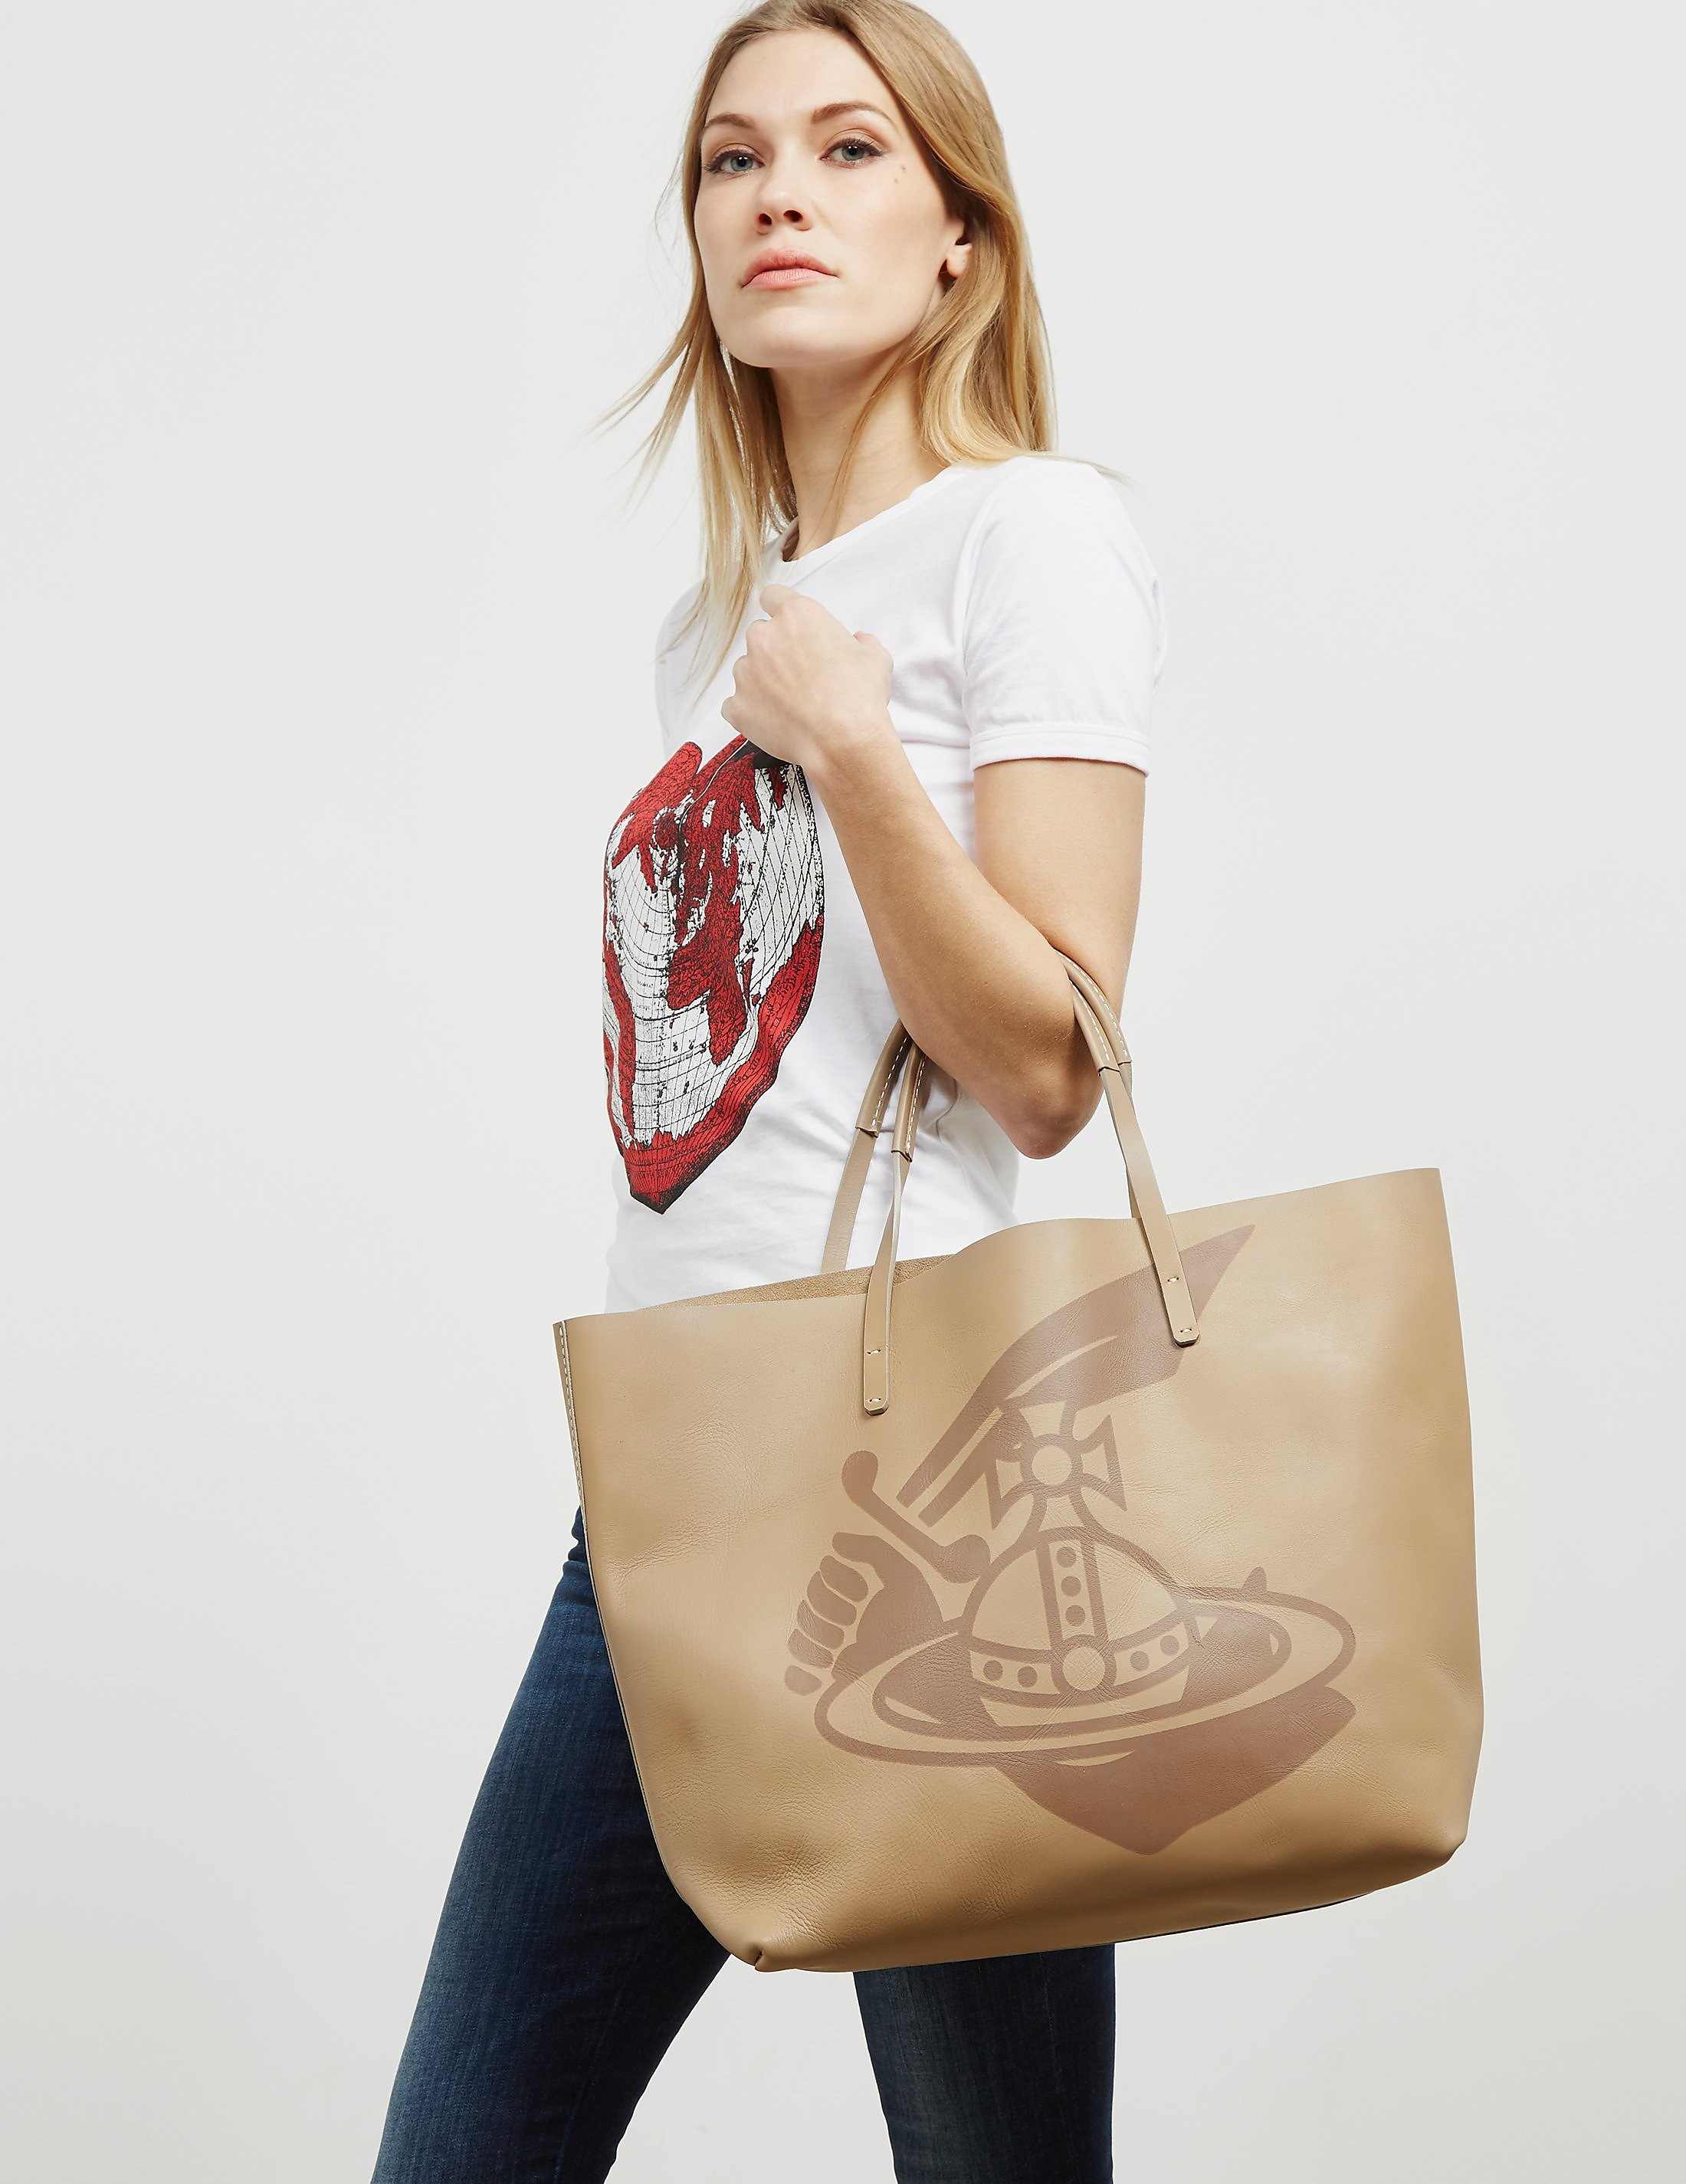 Vivienne Westwood Anglomania Africa Shopper Bag